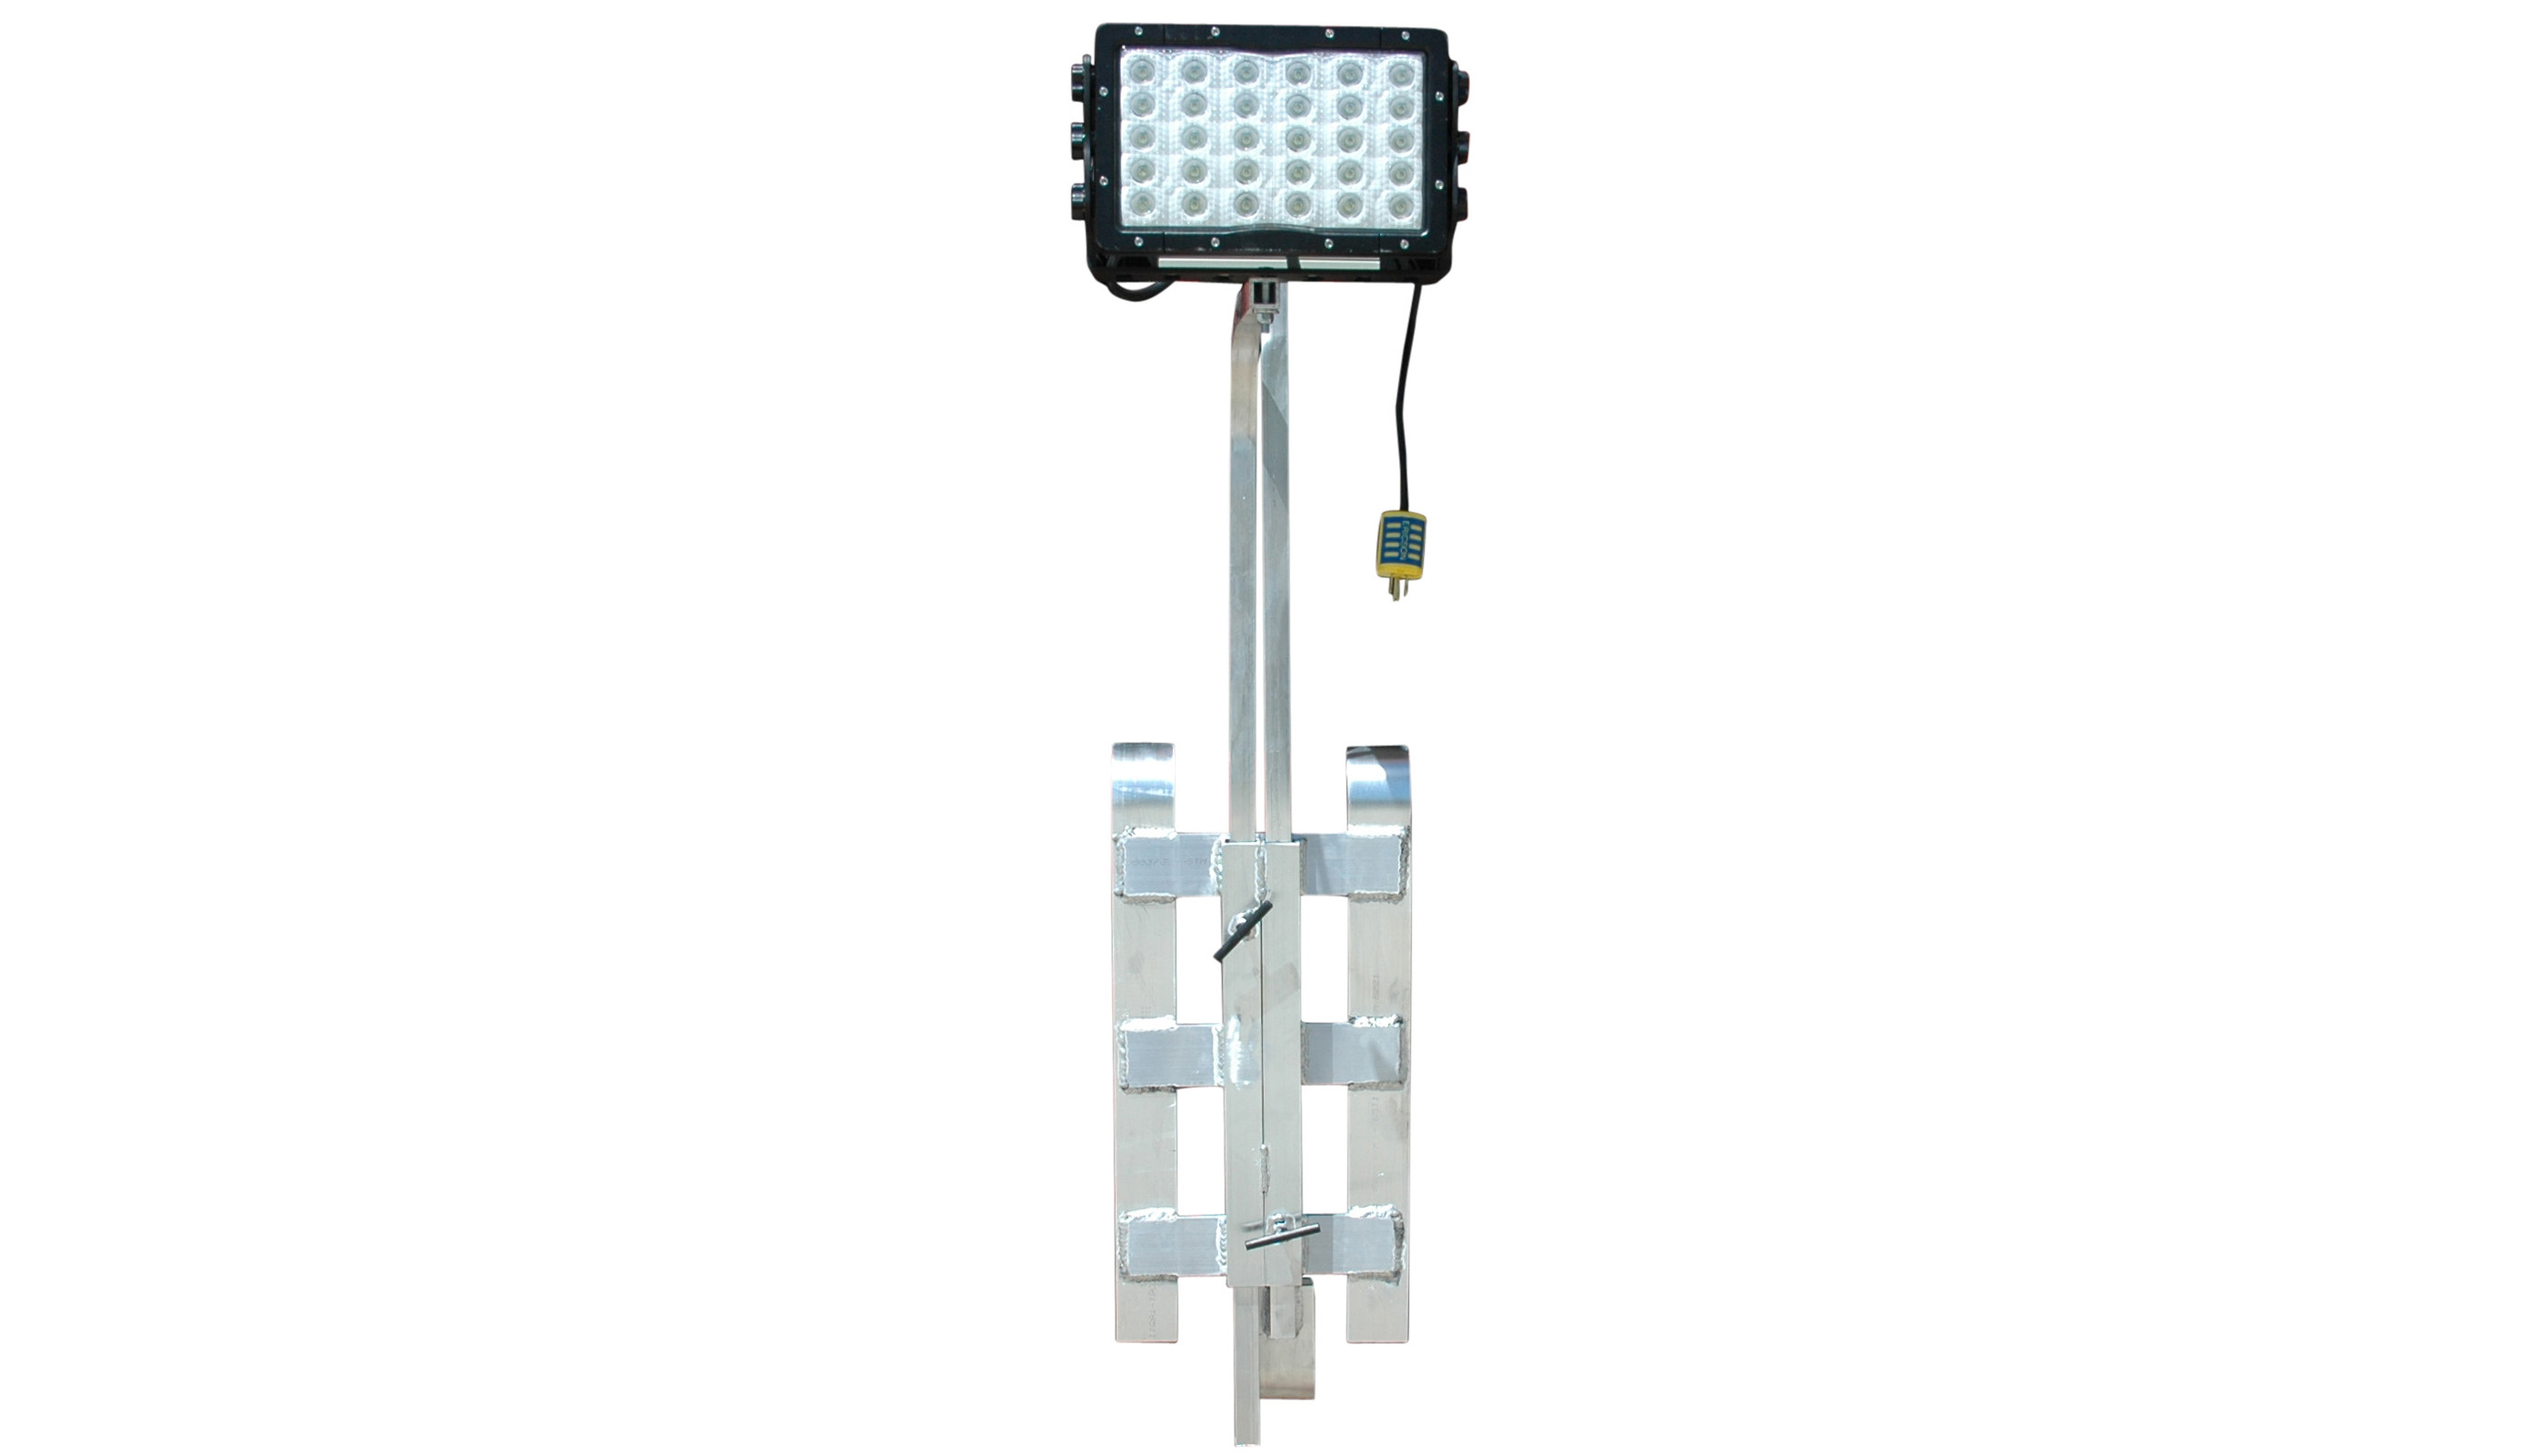 Larson Electronics Releases Scaffold Mount Work Light With